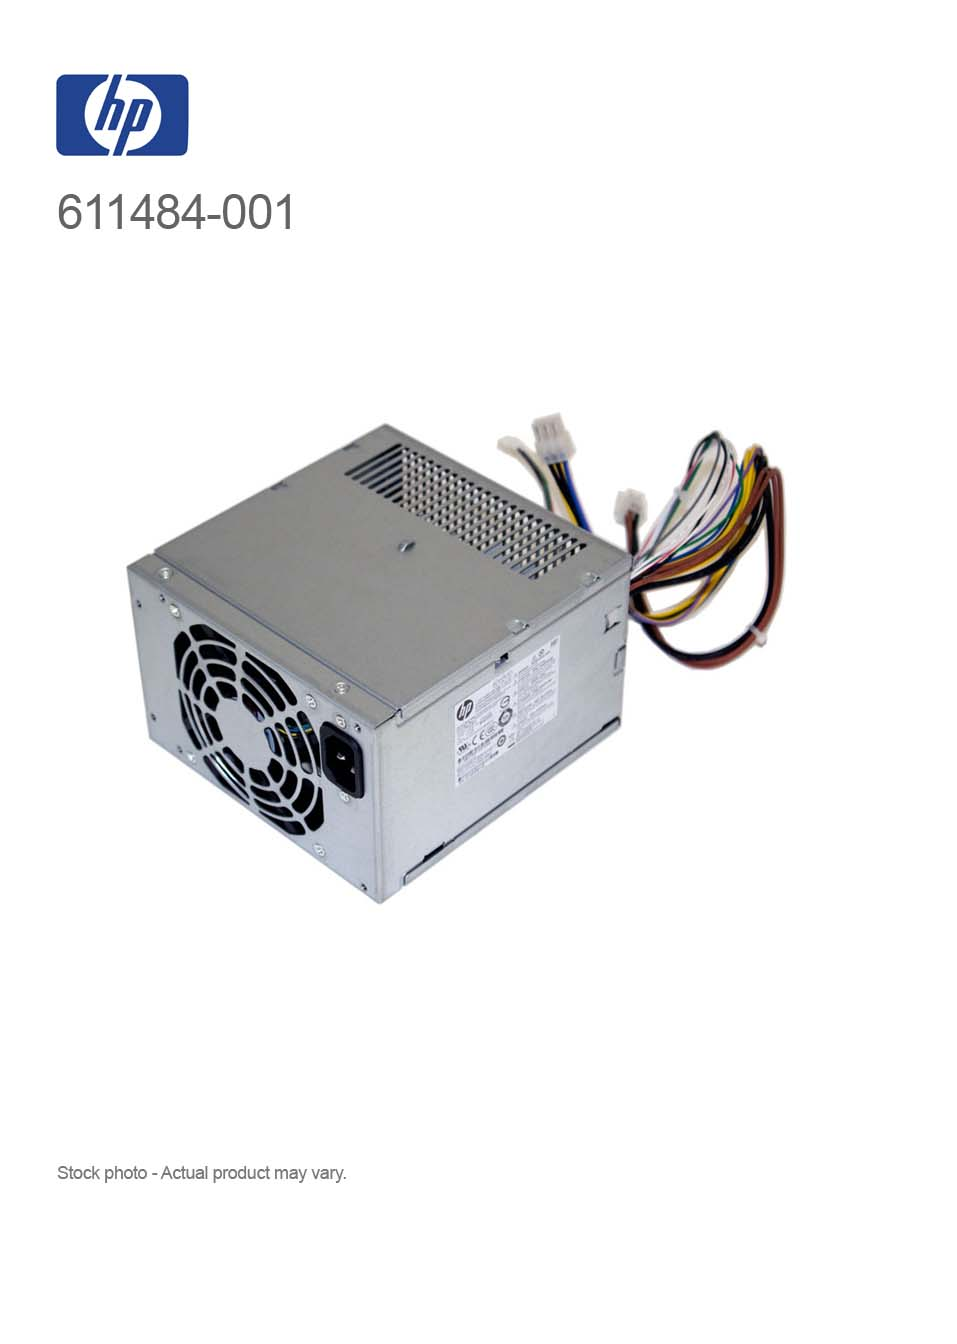 HP 320W 611484-001 PS-4321-1HB Power Supply for 8200, 6200 CMT ...